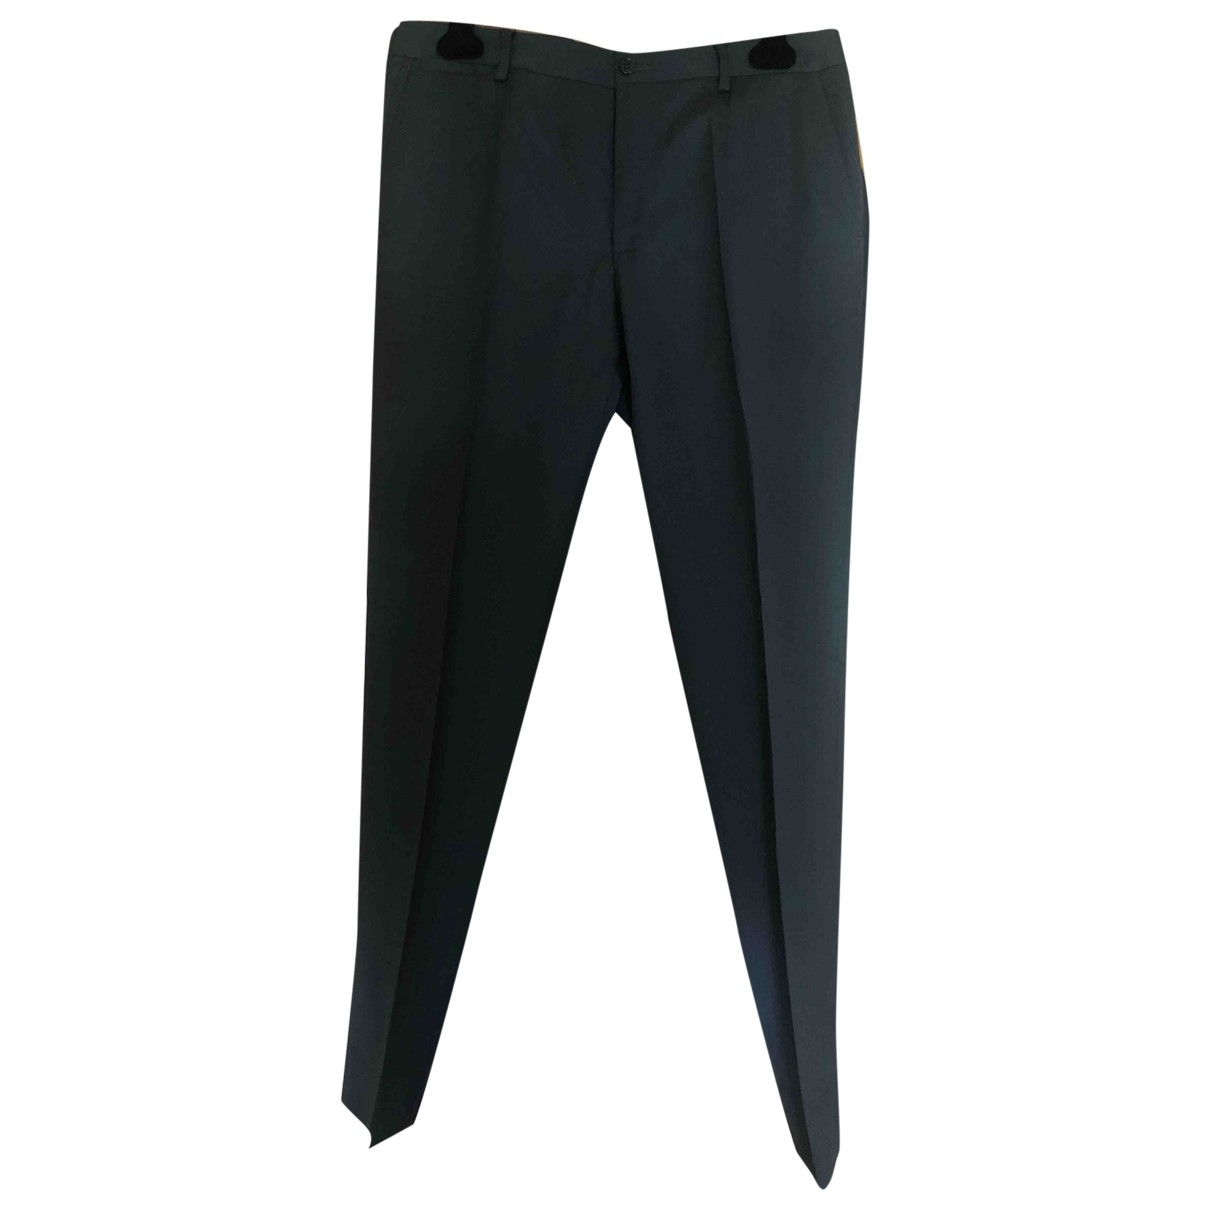 D&g \N Anthracite Wool Trousers for Men 48 IT